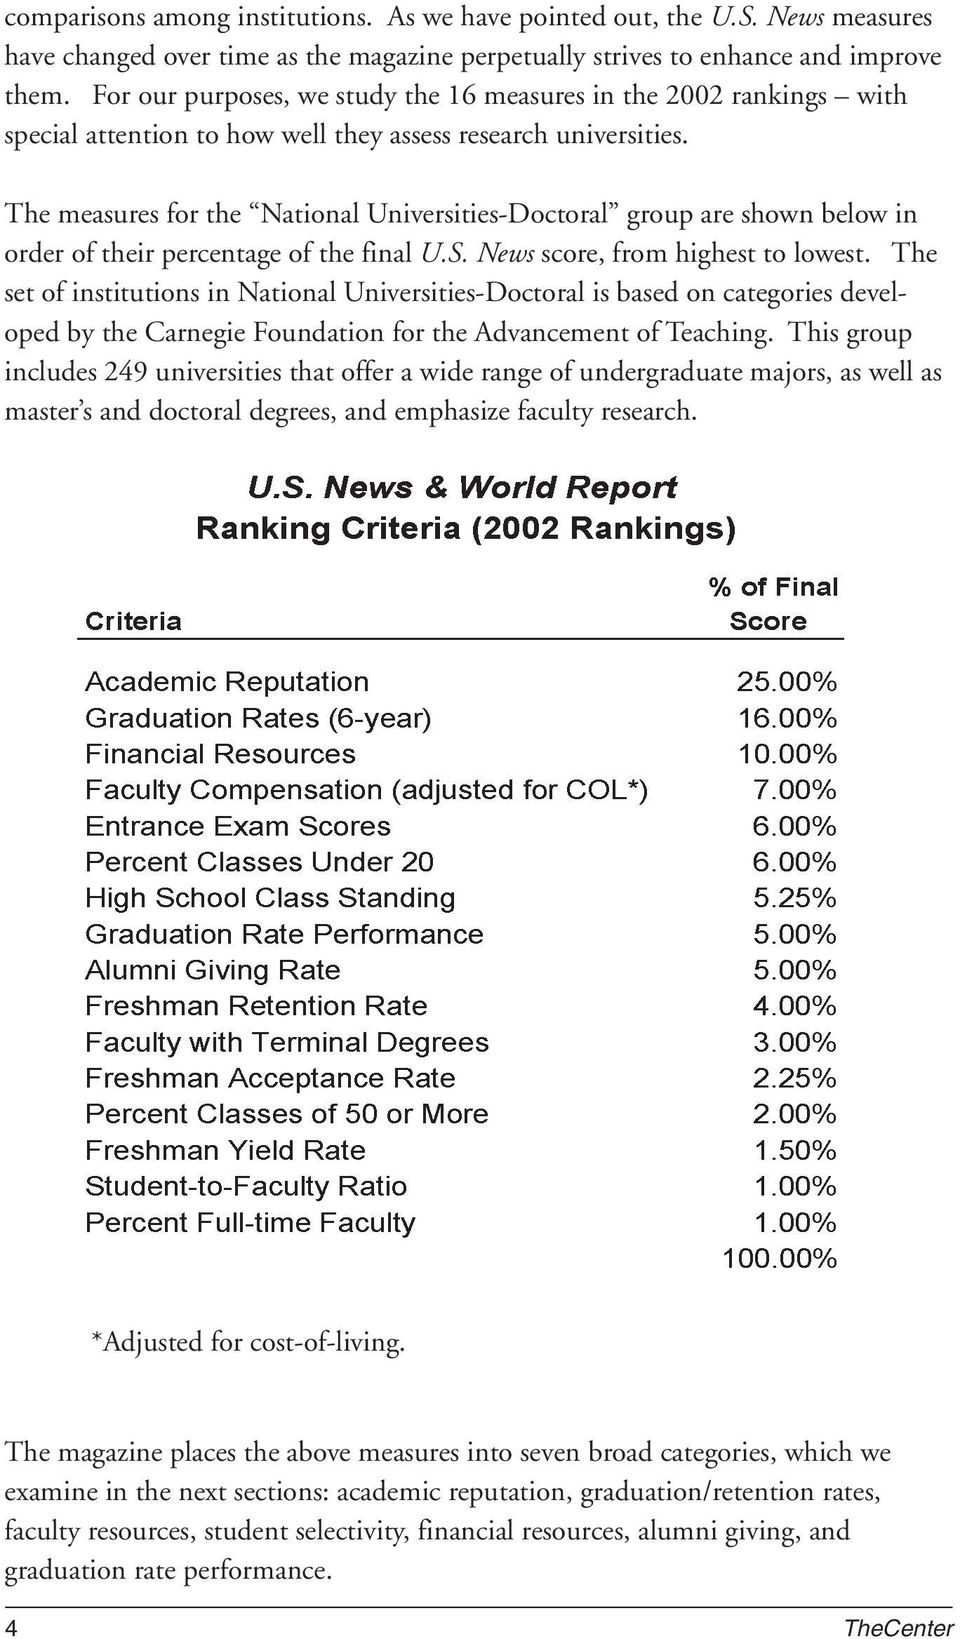 The measures for the National Universities-Doctoral group are shown below in order of their percentage of the final U.S. News score, from highest to lowest.